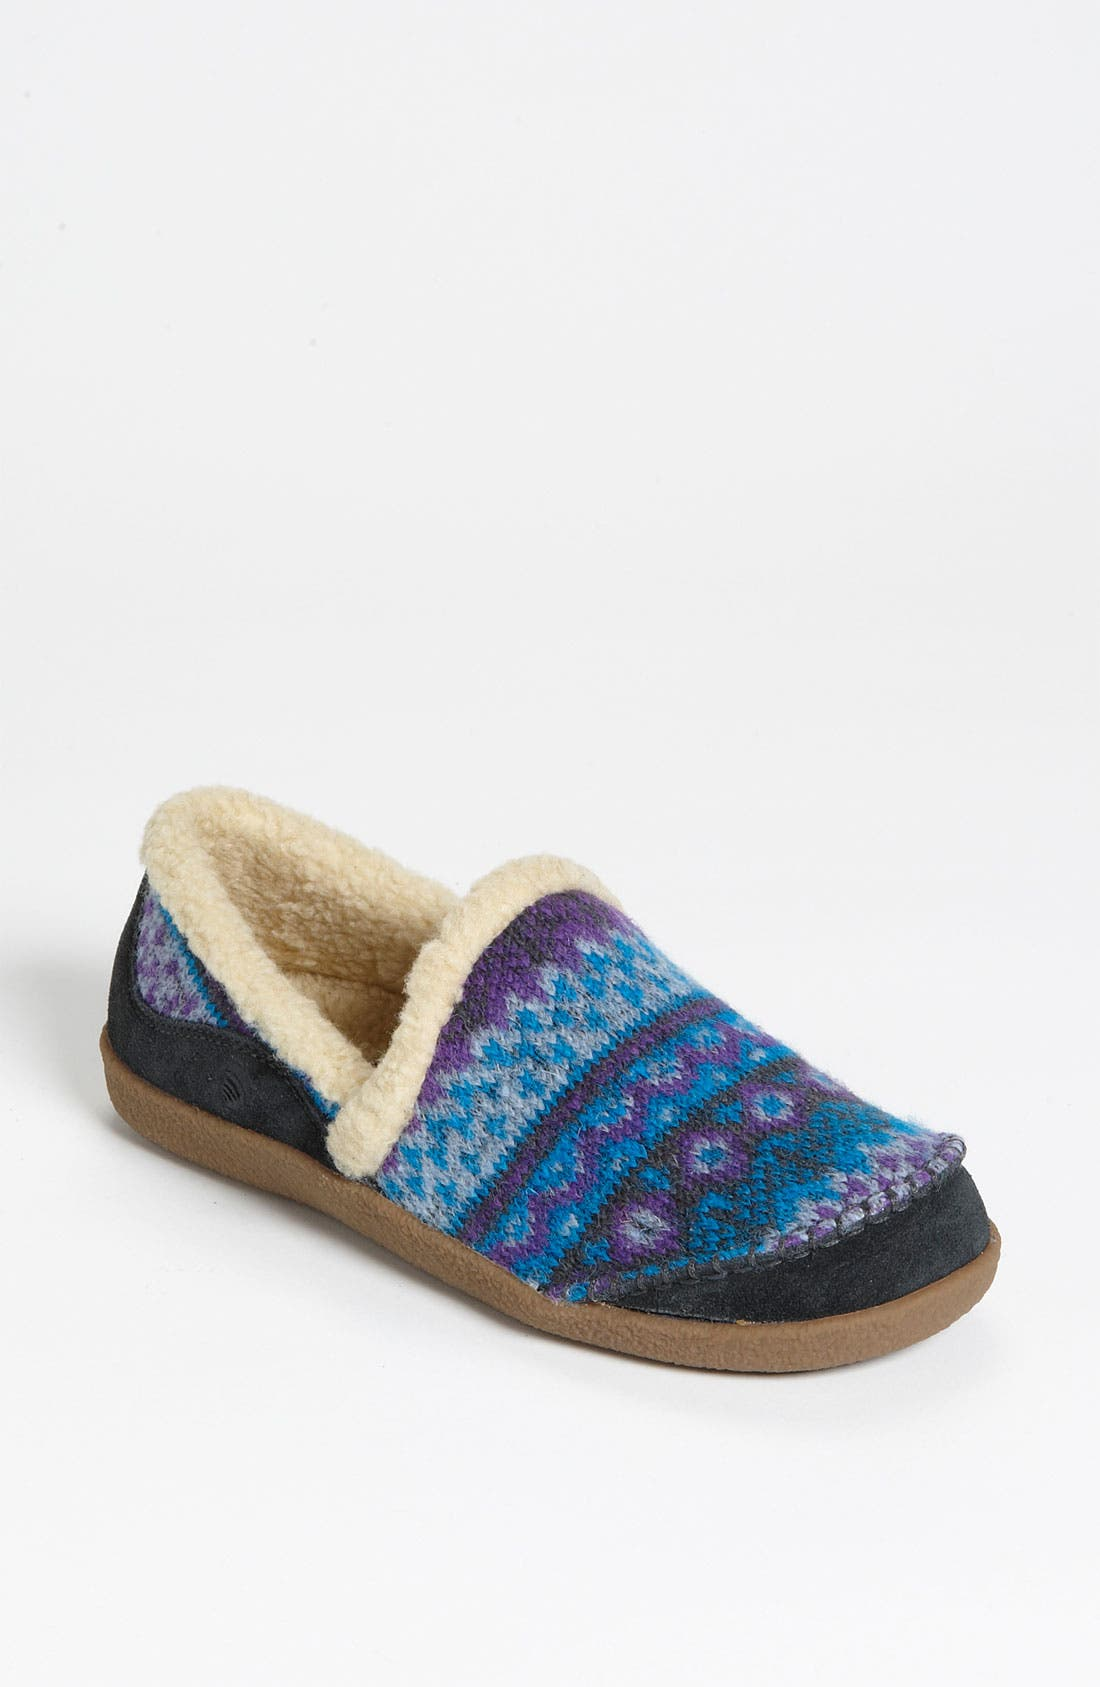 Main Image - Acorn 'Crosslander Moc' Slipper